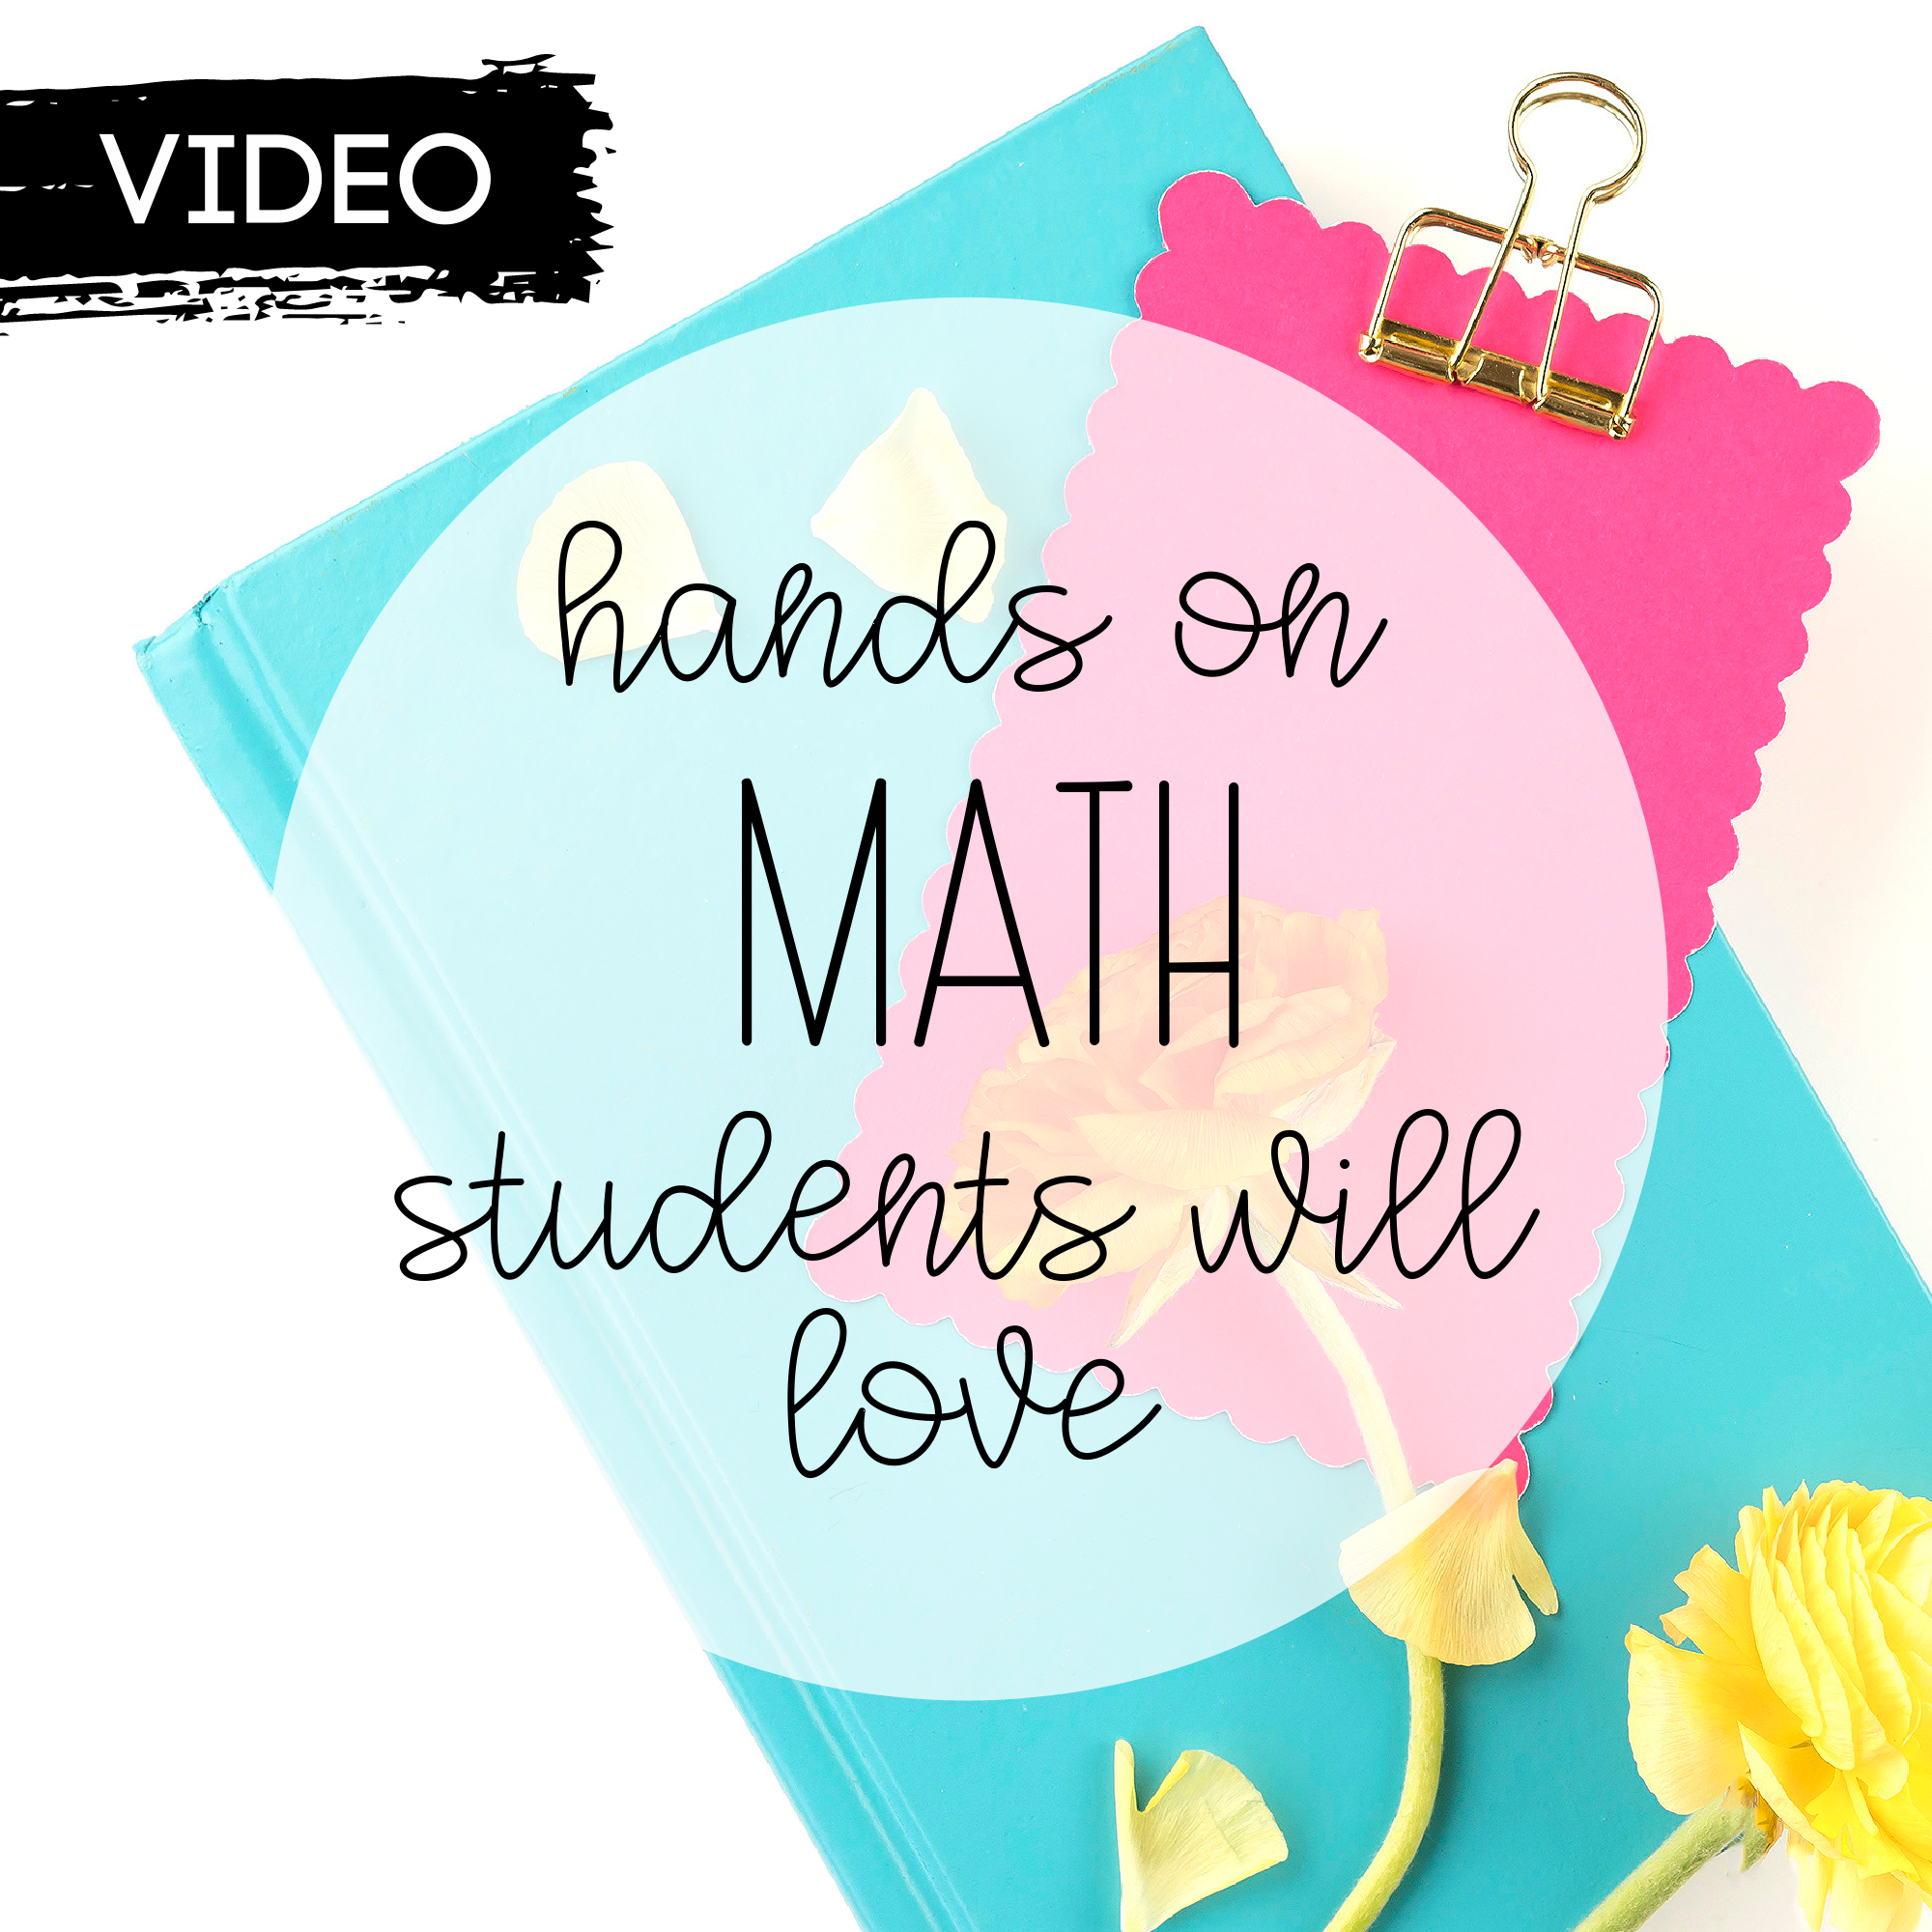 Hands On Math Students Will Love!